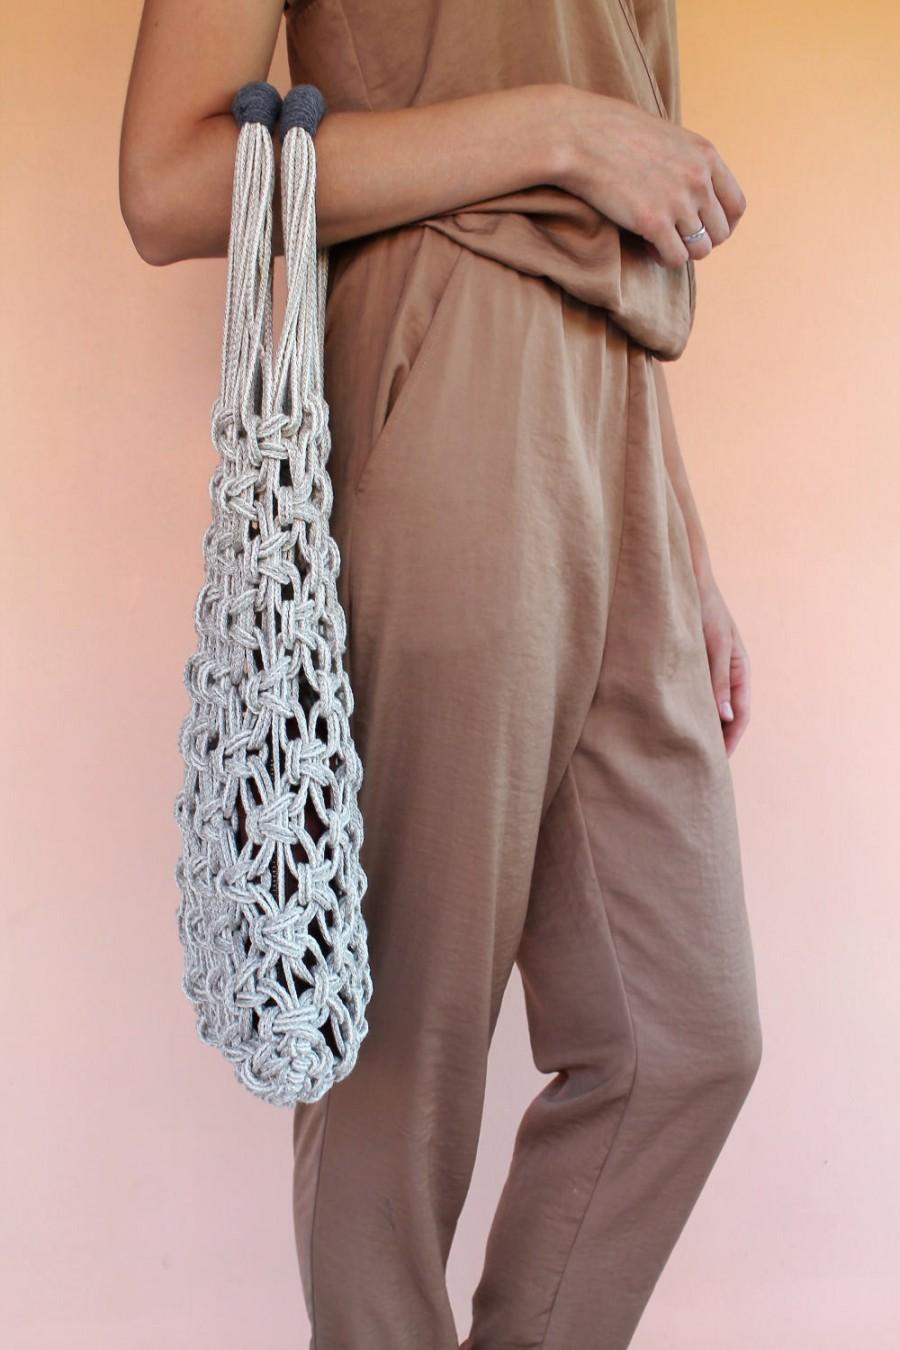 Wedding - Macrame Tote Bag - Shopper Bag - Natural Linen and Cotton Bag - Eco Friendly bag - Vegan bag - Summer Bag - Beige and Grey Color